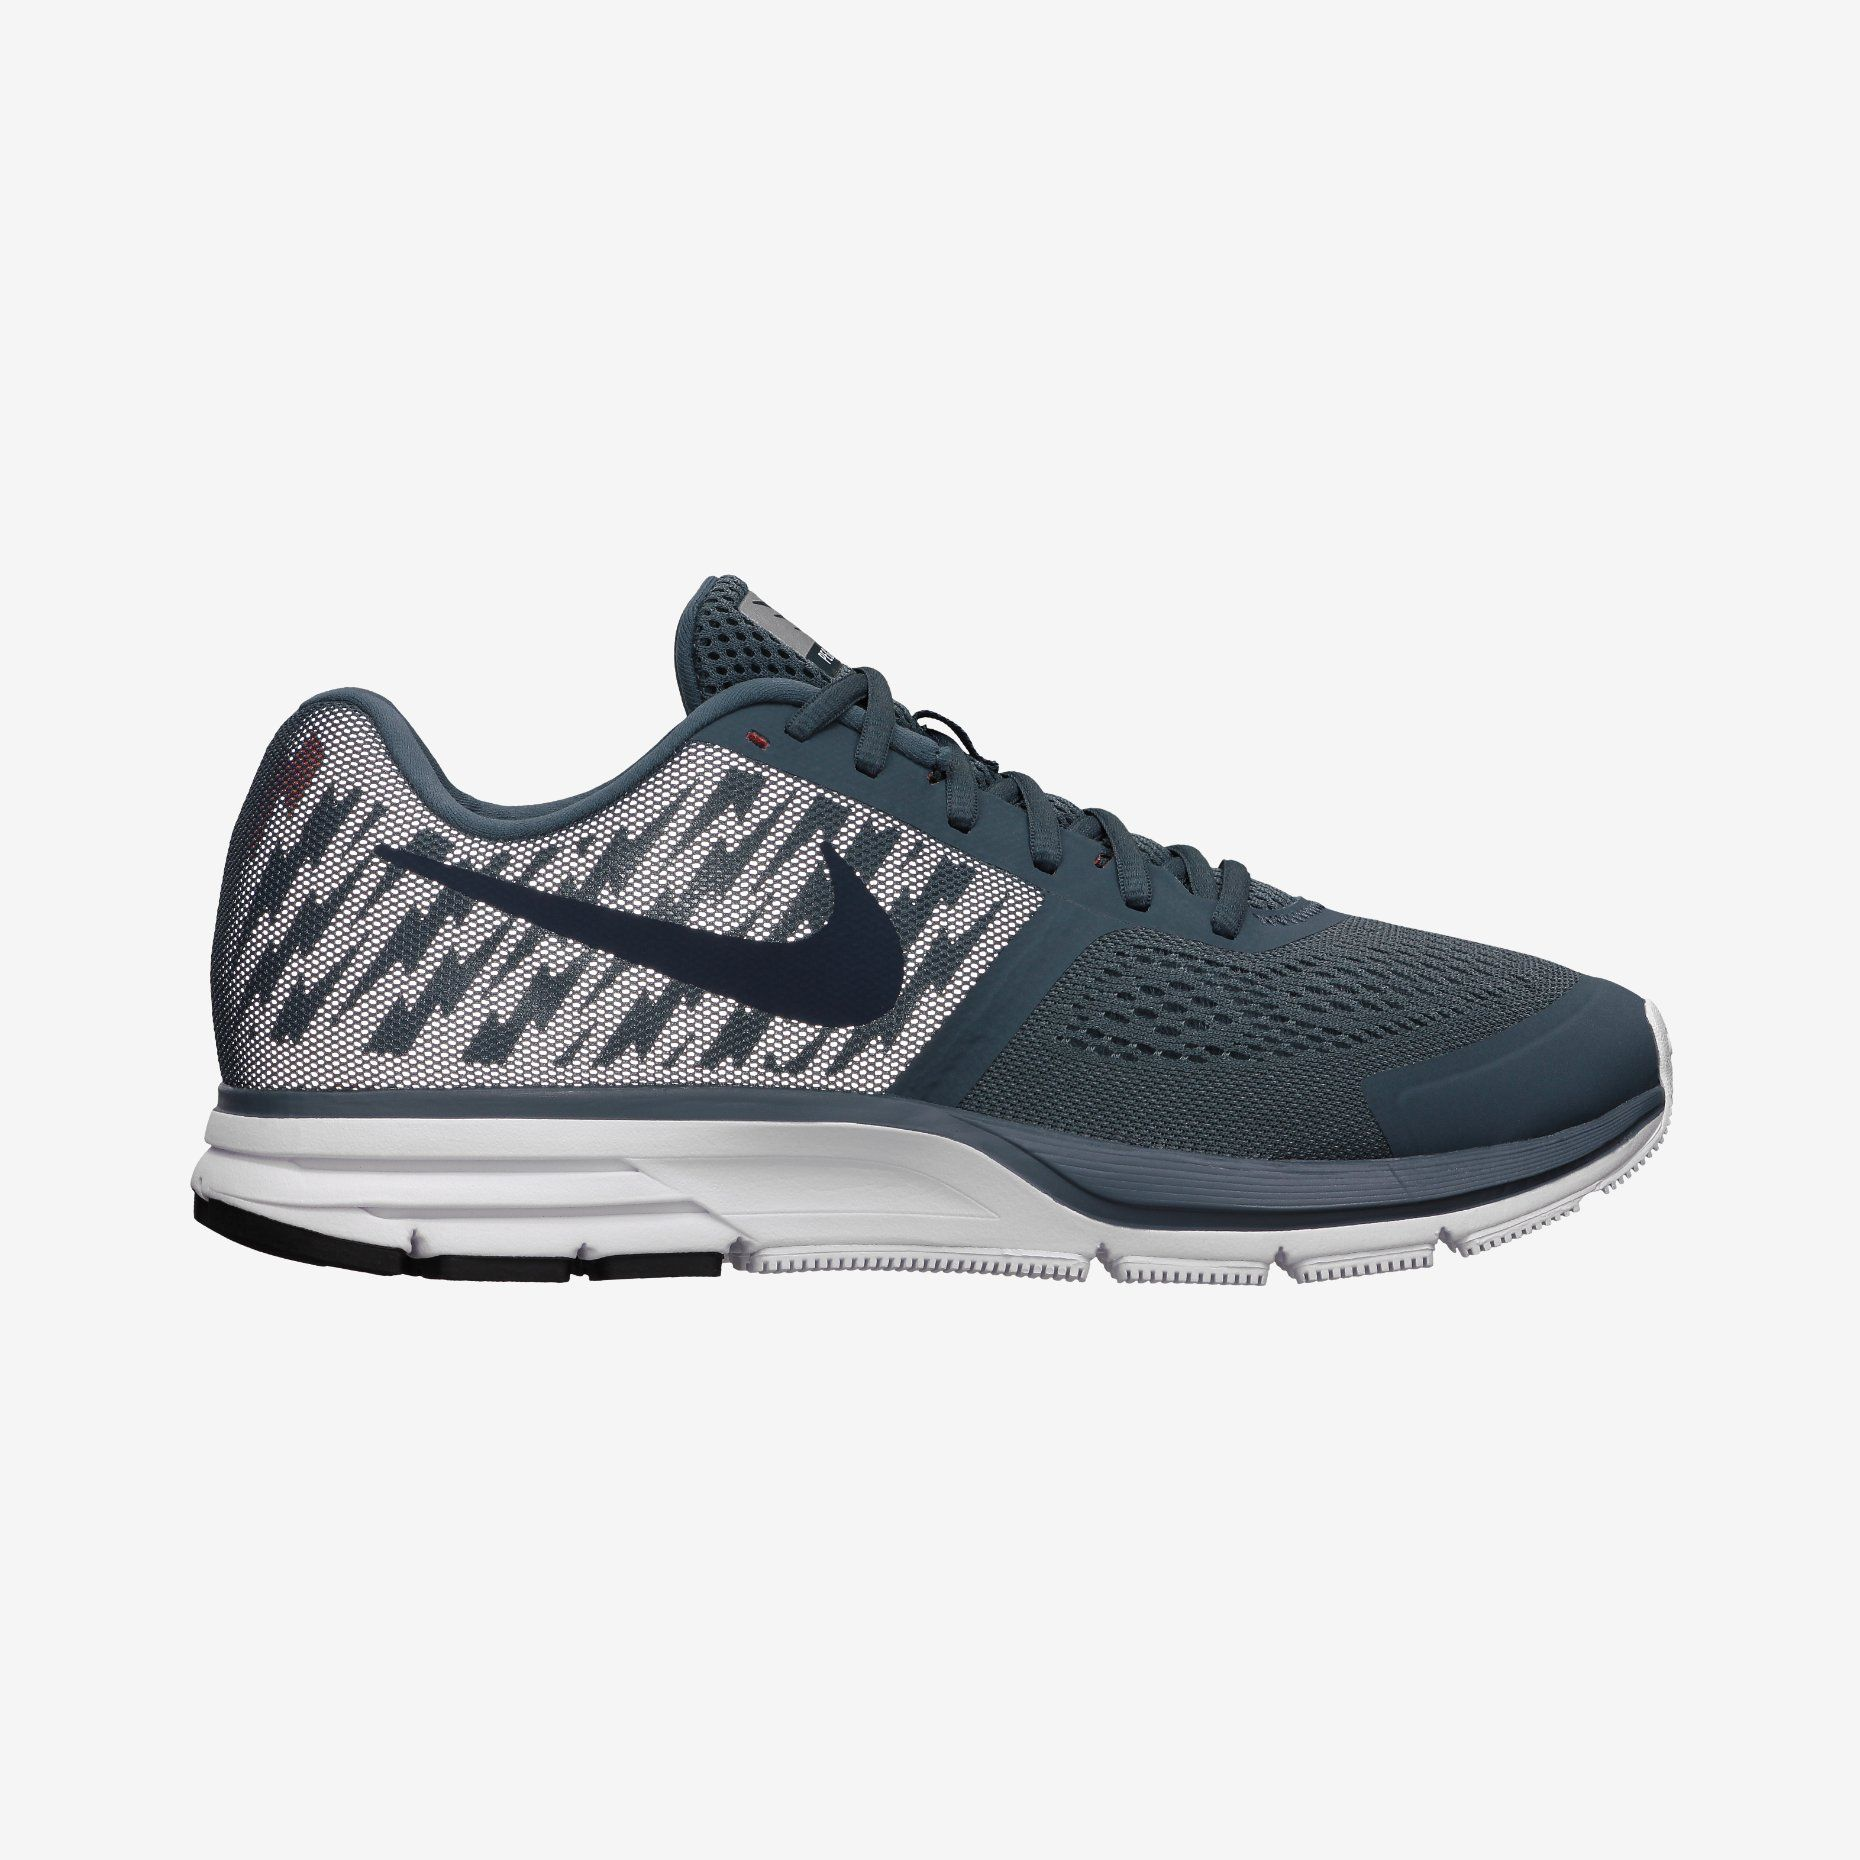 Nike Store. Nike Air Pegasus 30 Limited Edition Men's Running Shoe - One  helluva fly